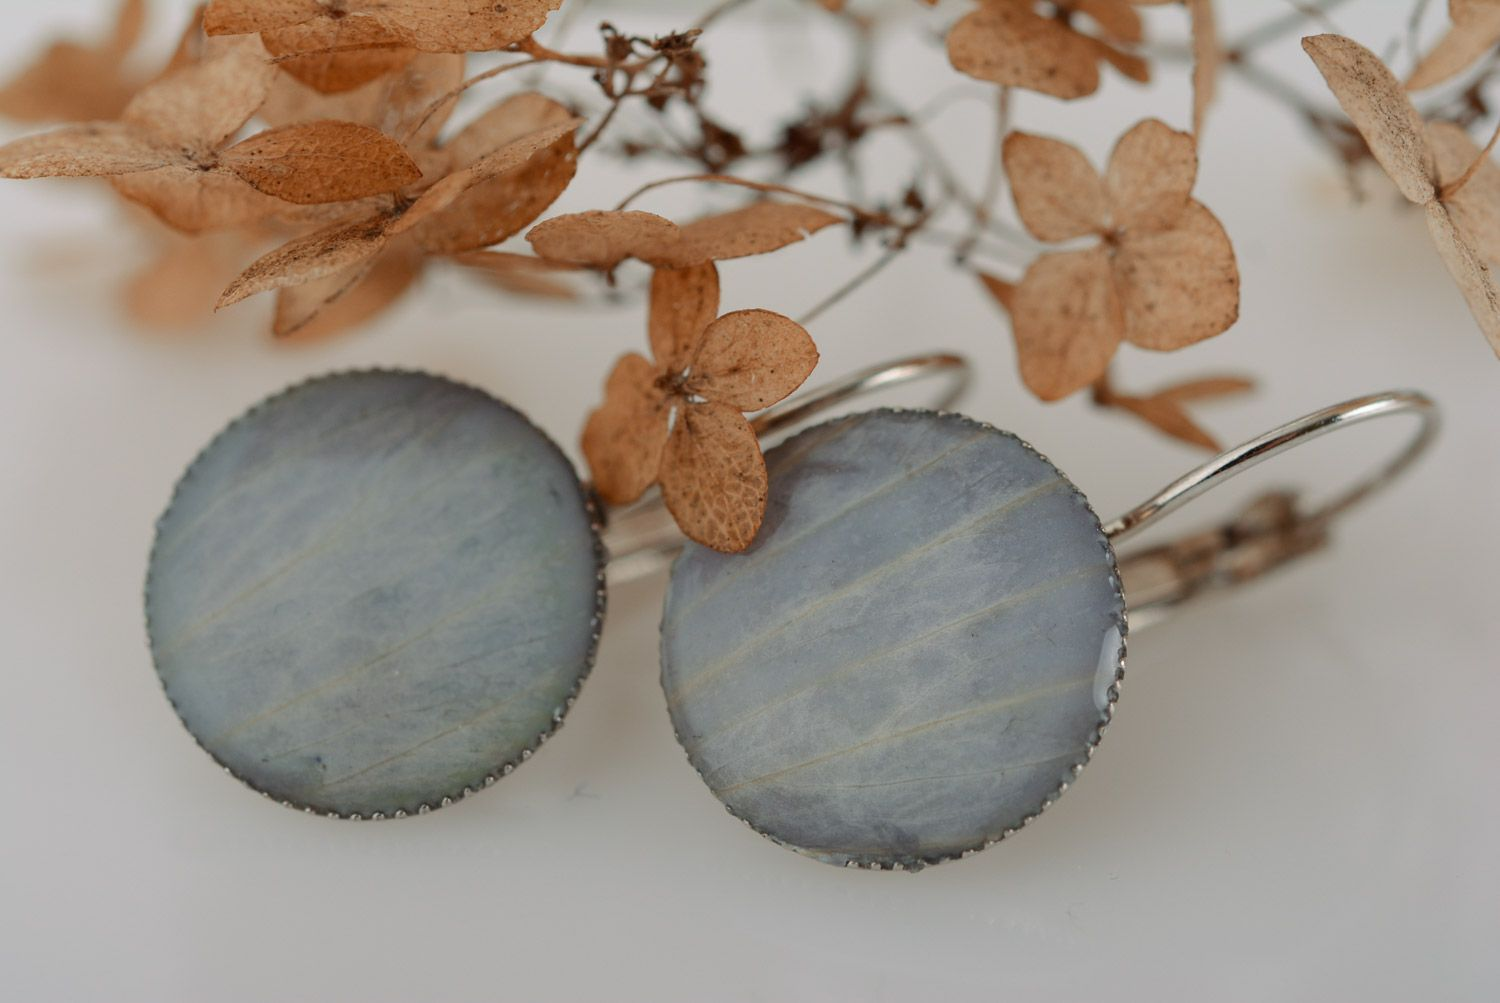 Handmade designer round earrings with flower petals coated with epoxy photo 1